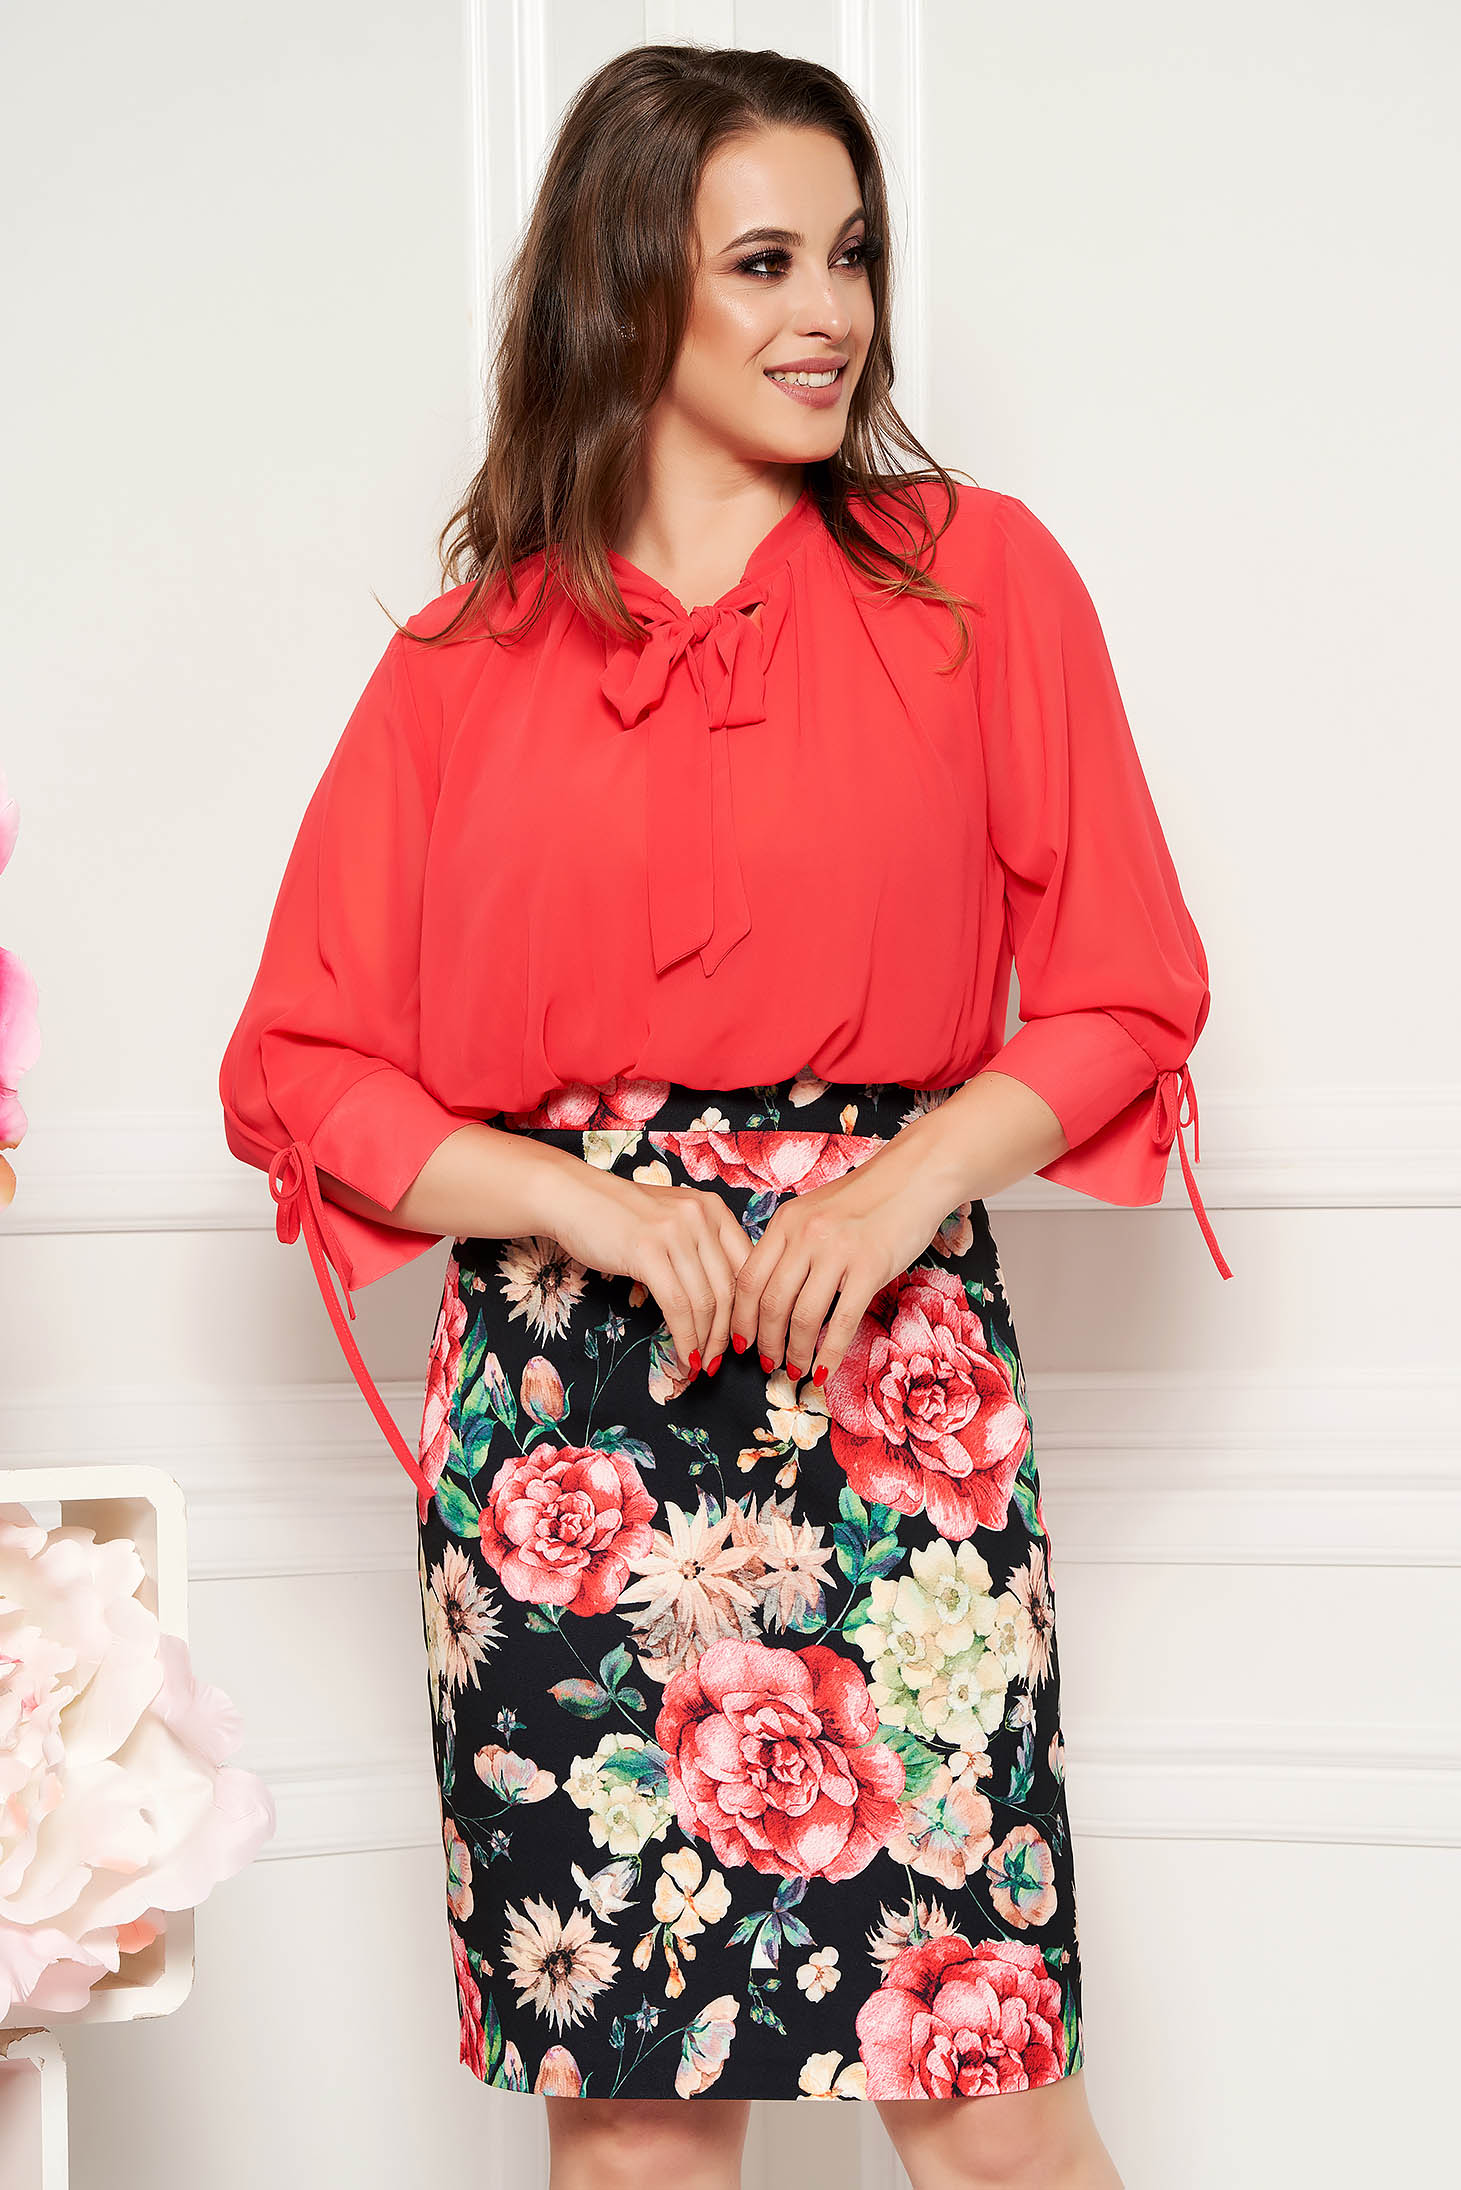 Coral elegant daily midi pencil dress with 3/4 sleeves with floral prints